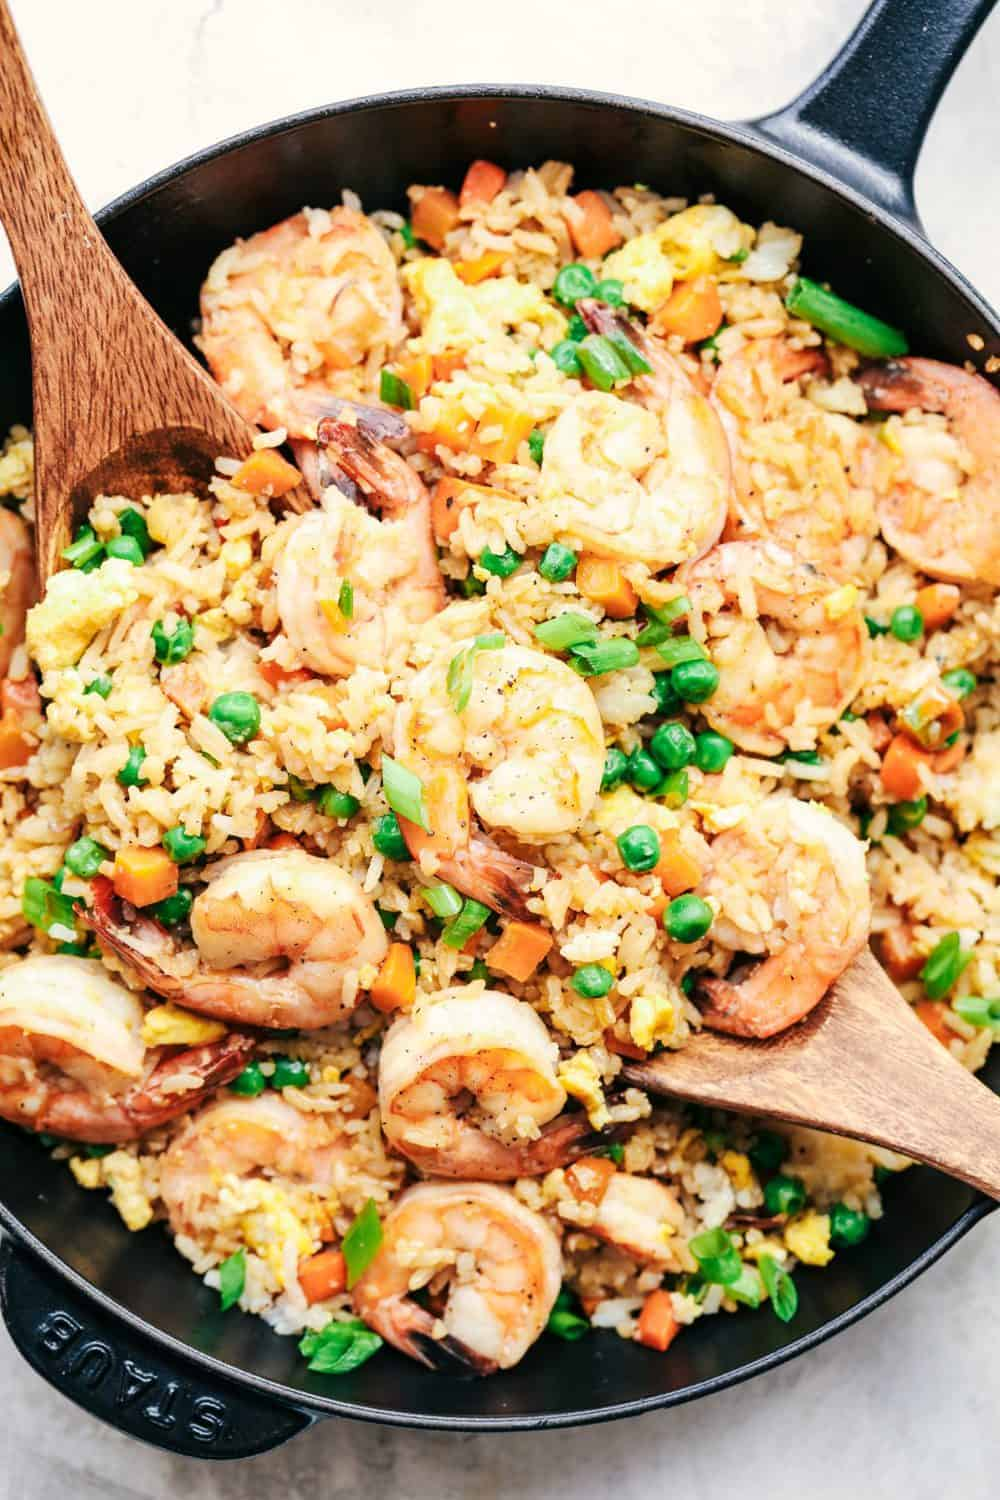 Shrimp fried rice.